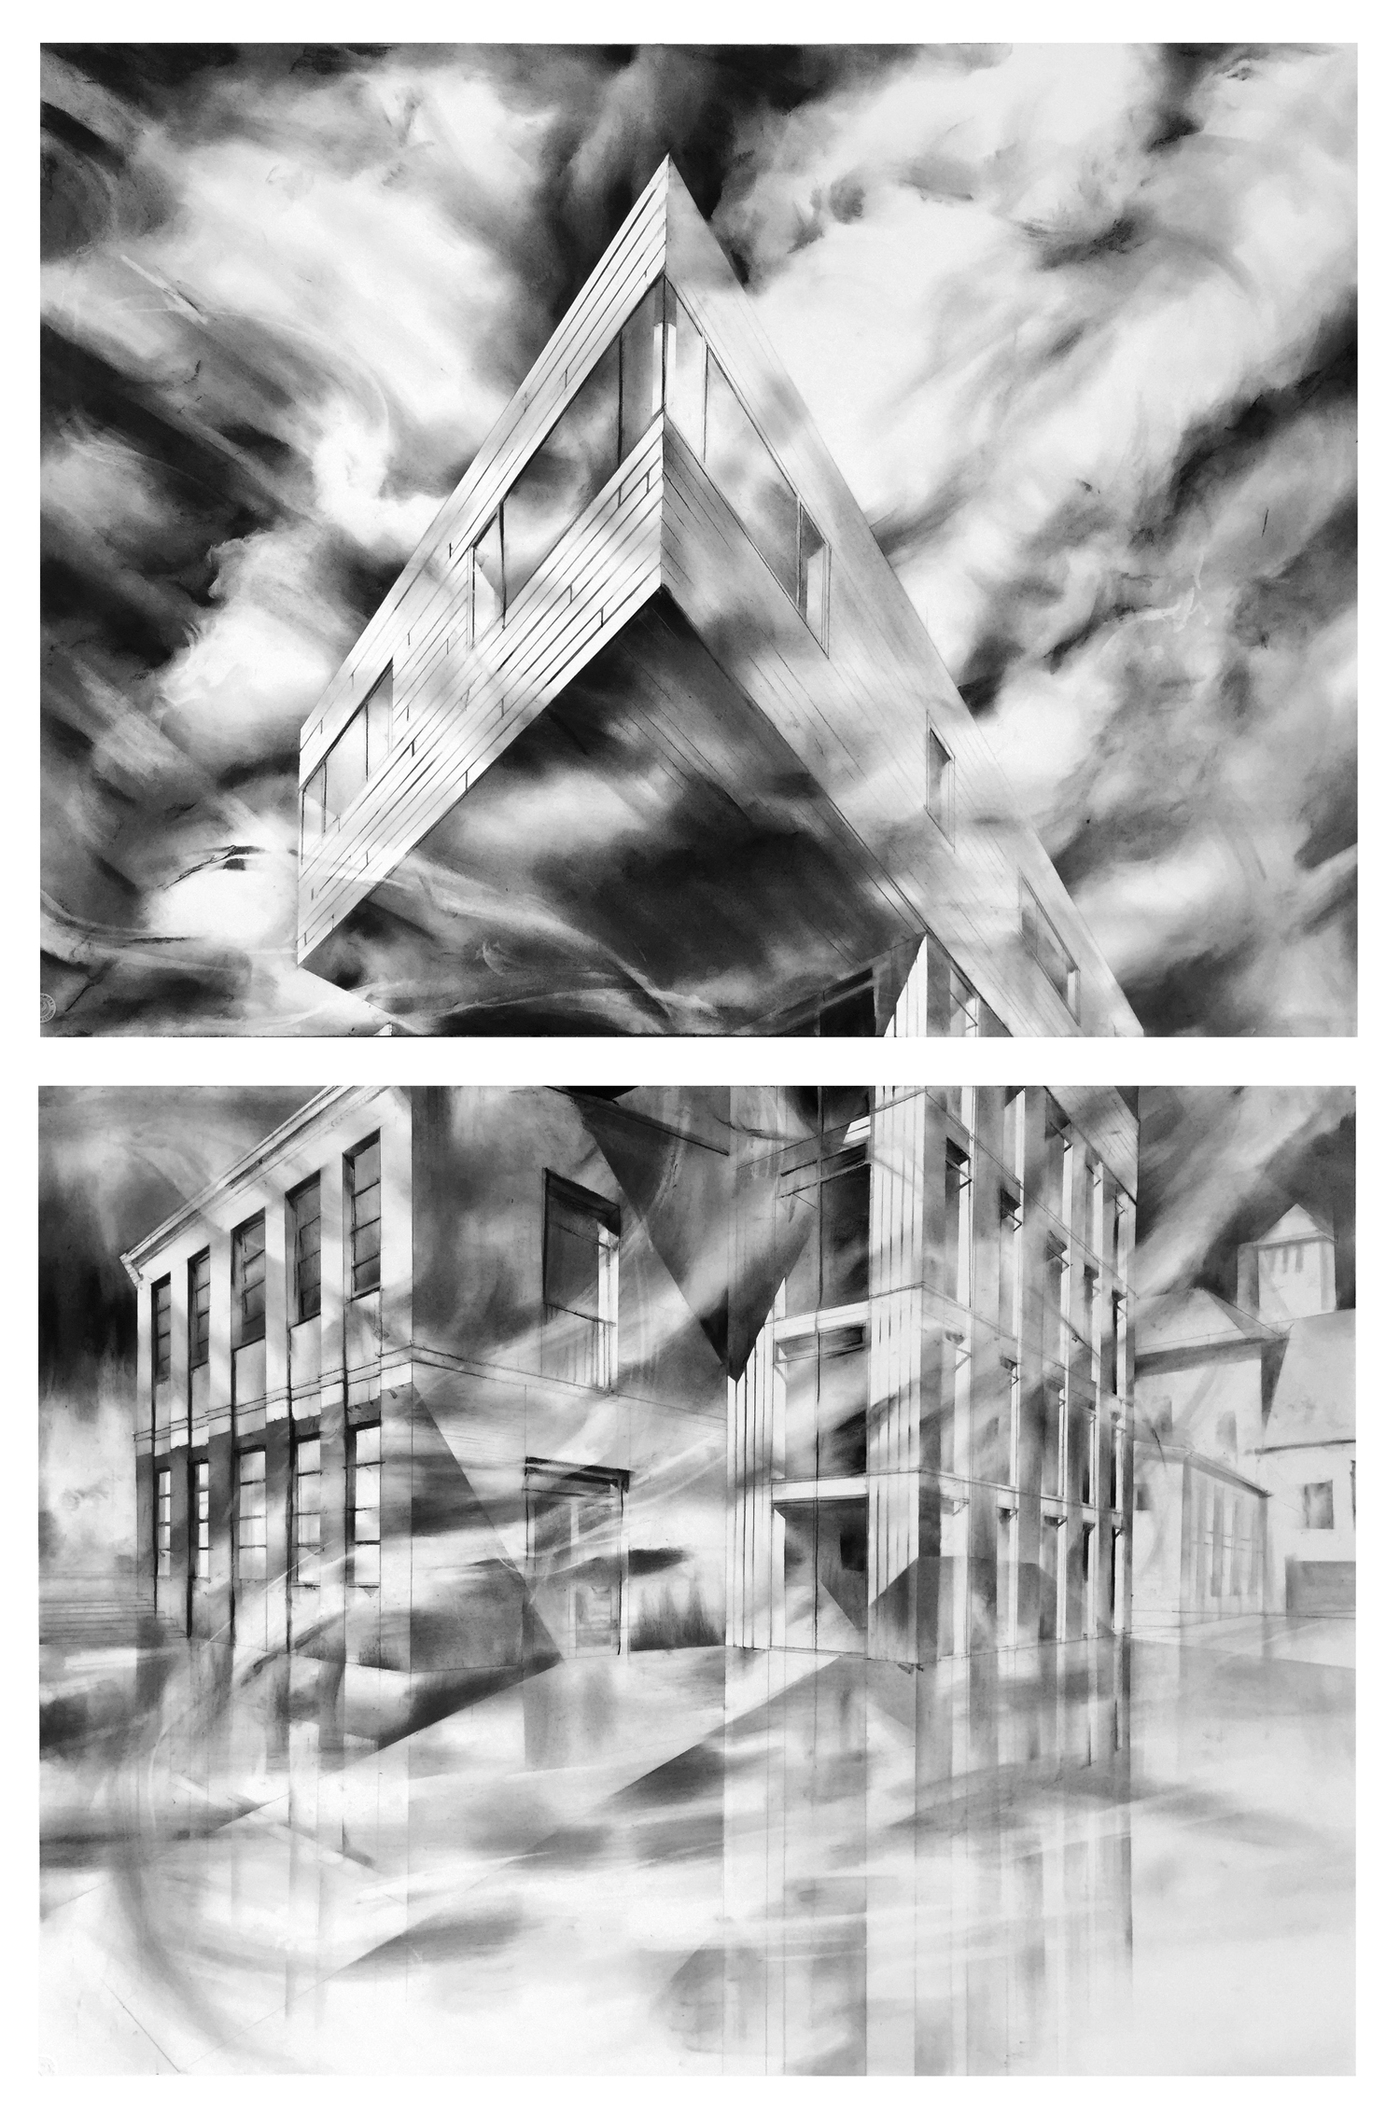 drawing for 2017 exhibit at the Architektur Galerie Berlin, Germany